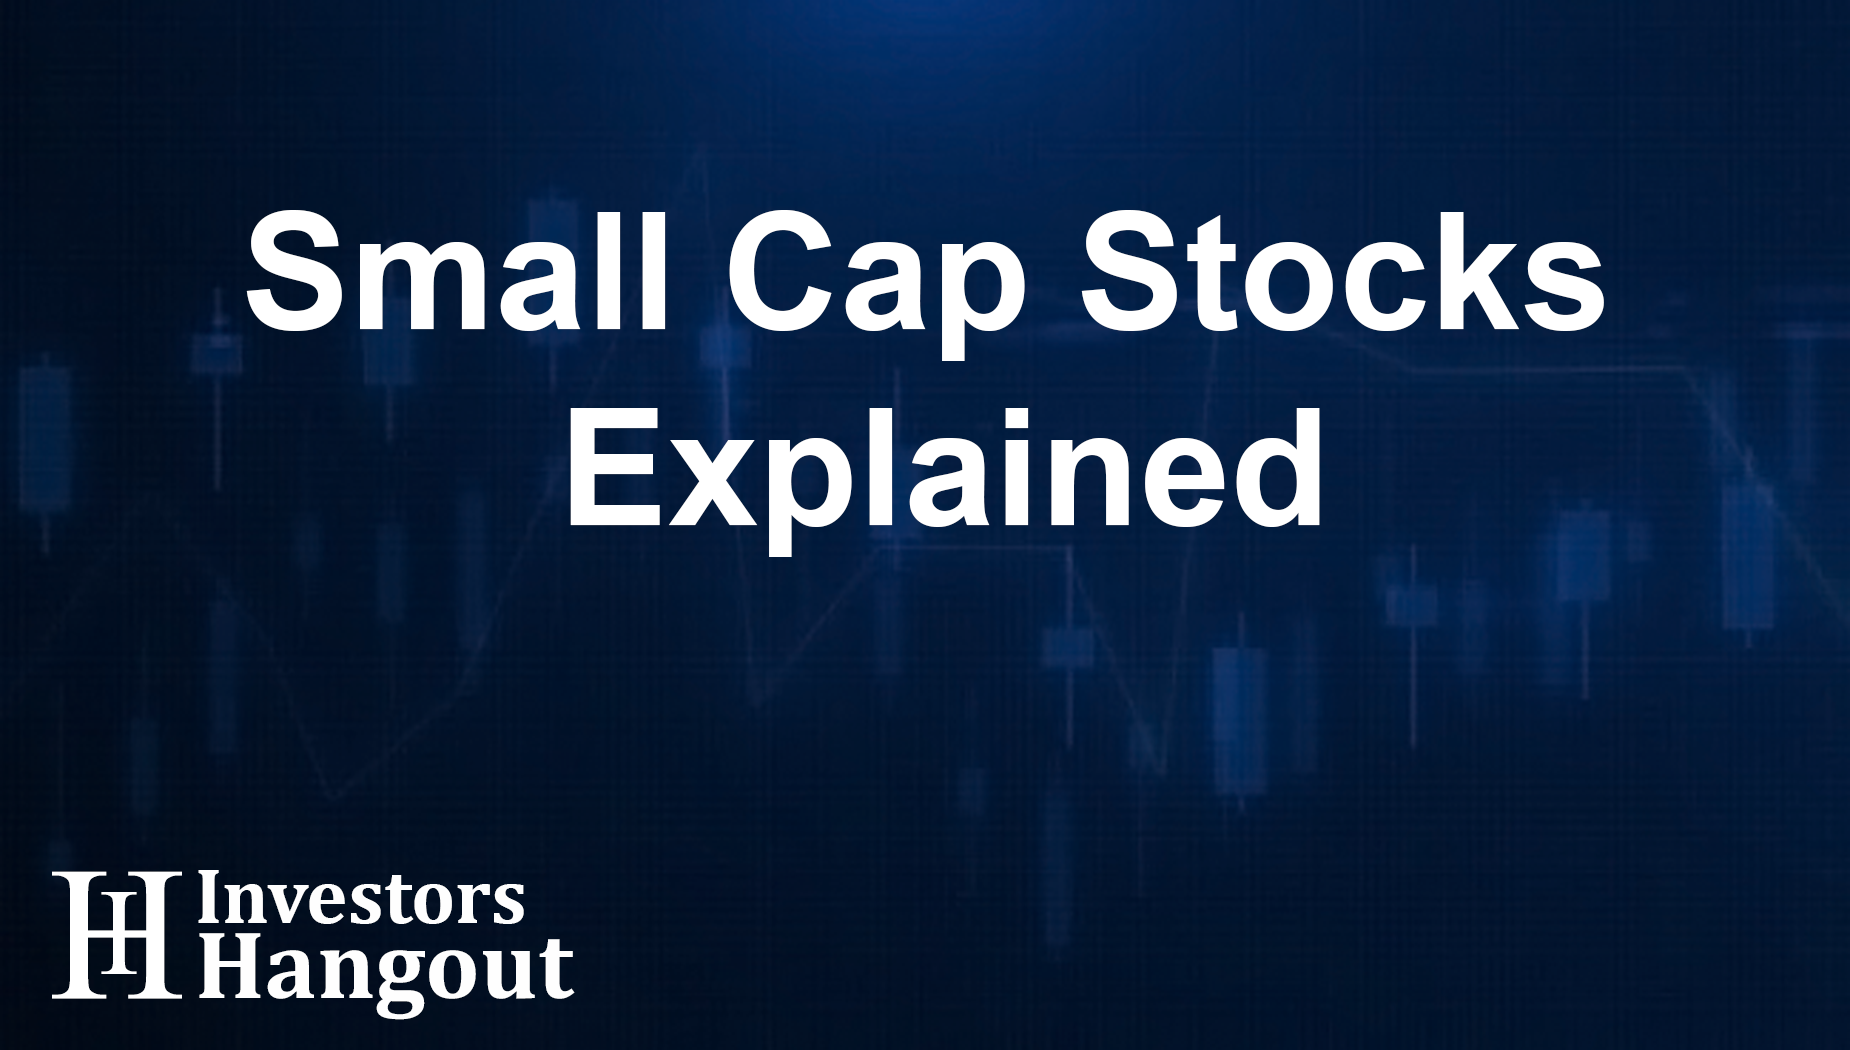 Small Cap Stocks Explained